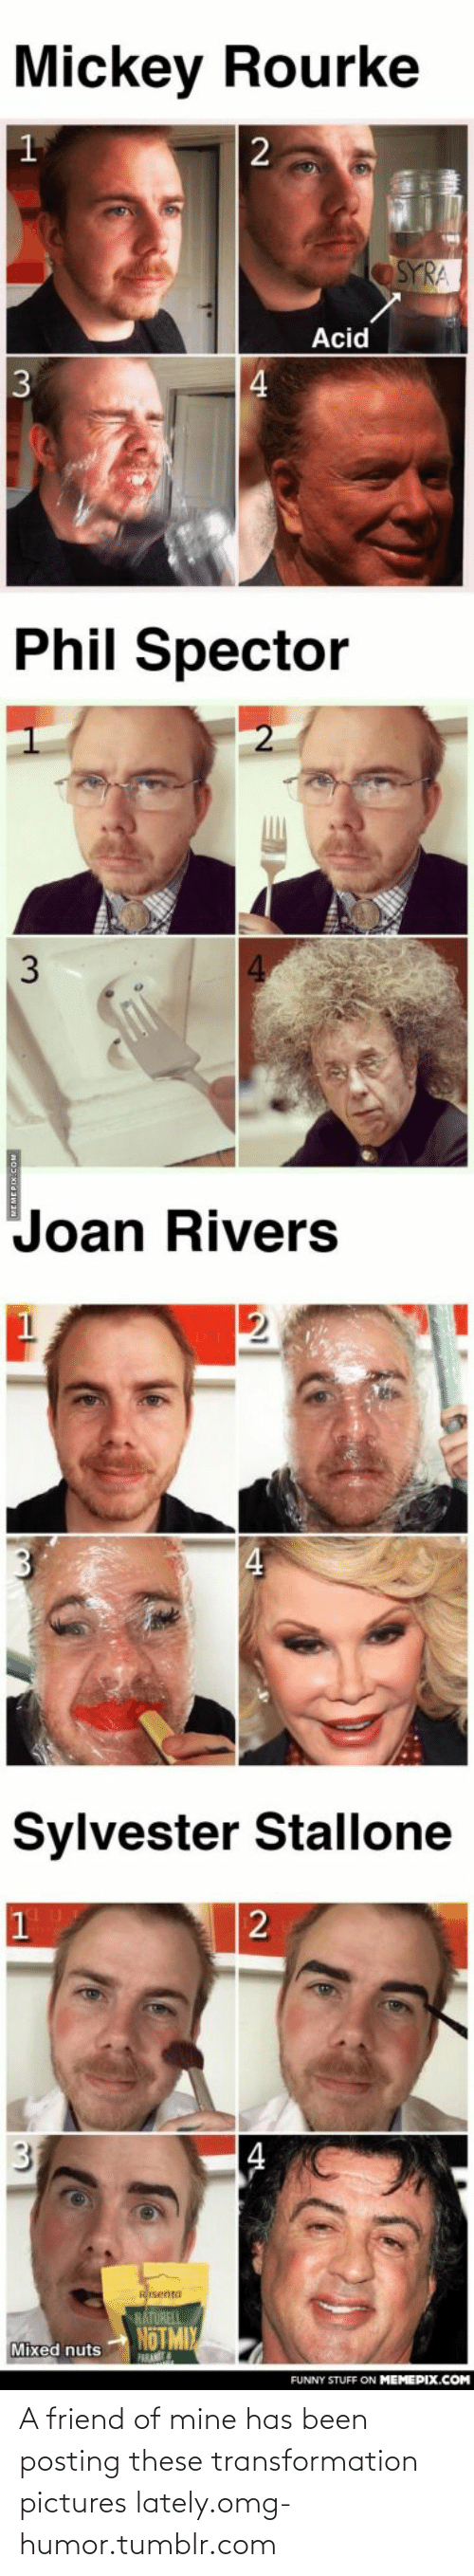 mickey rourke: Mickey Rourke  2  SYRA  Acid  3  Phil Spector  Joan Rivers  Sylvester Stallone  31  isenta  NÁTURELI  NOTMIY  Mixed nuts  PARAN  FUNNY STUFF ON MEMEPIX.COM A friend of mine has been posting these transformation pictures lately.omg-humor.tumblr.com